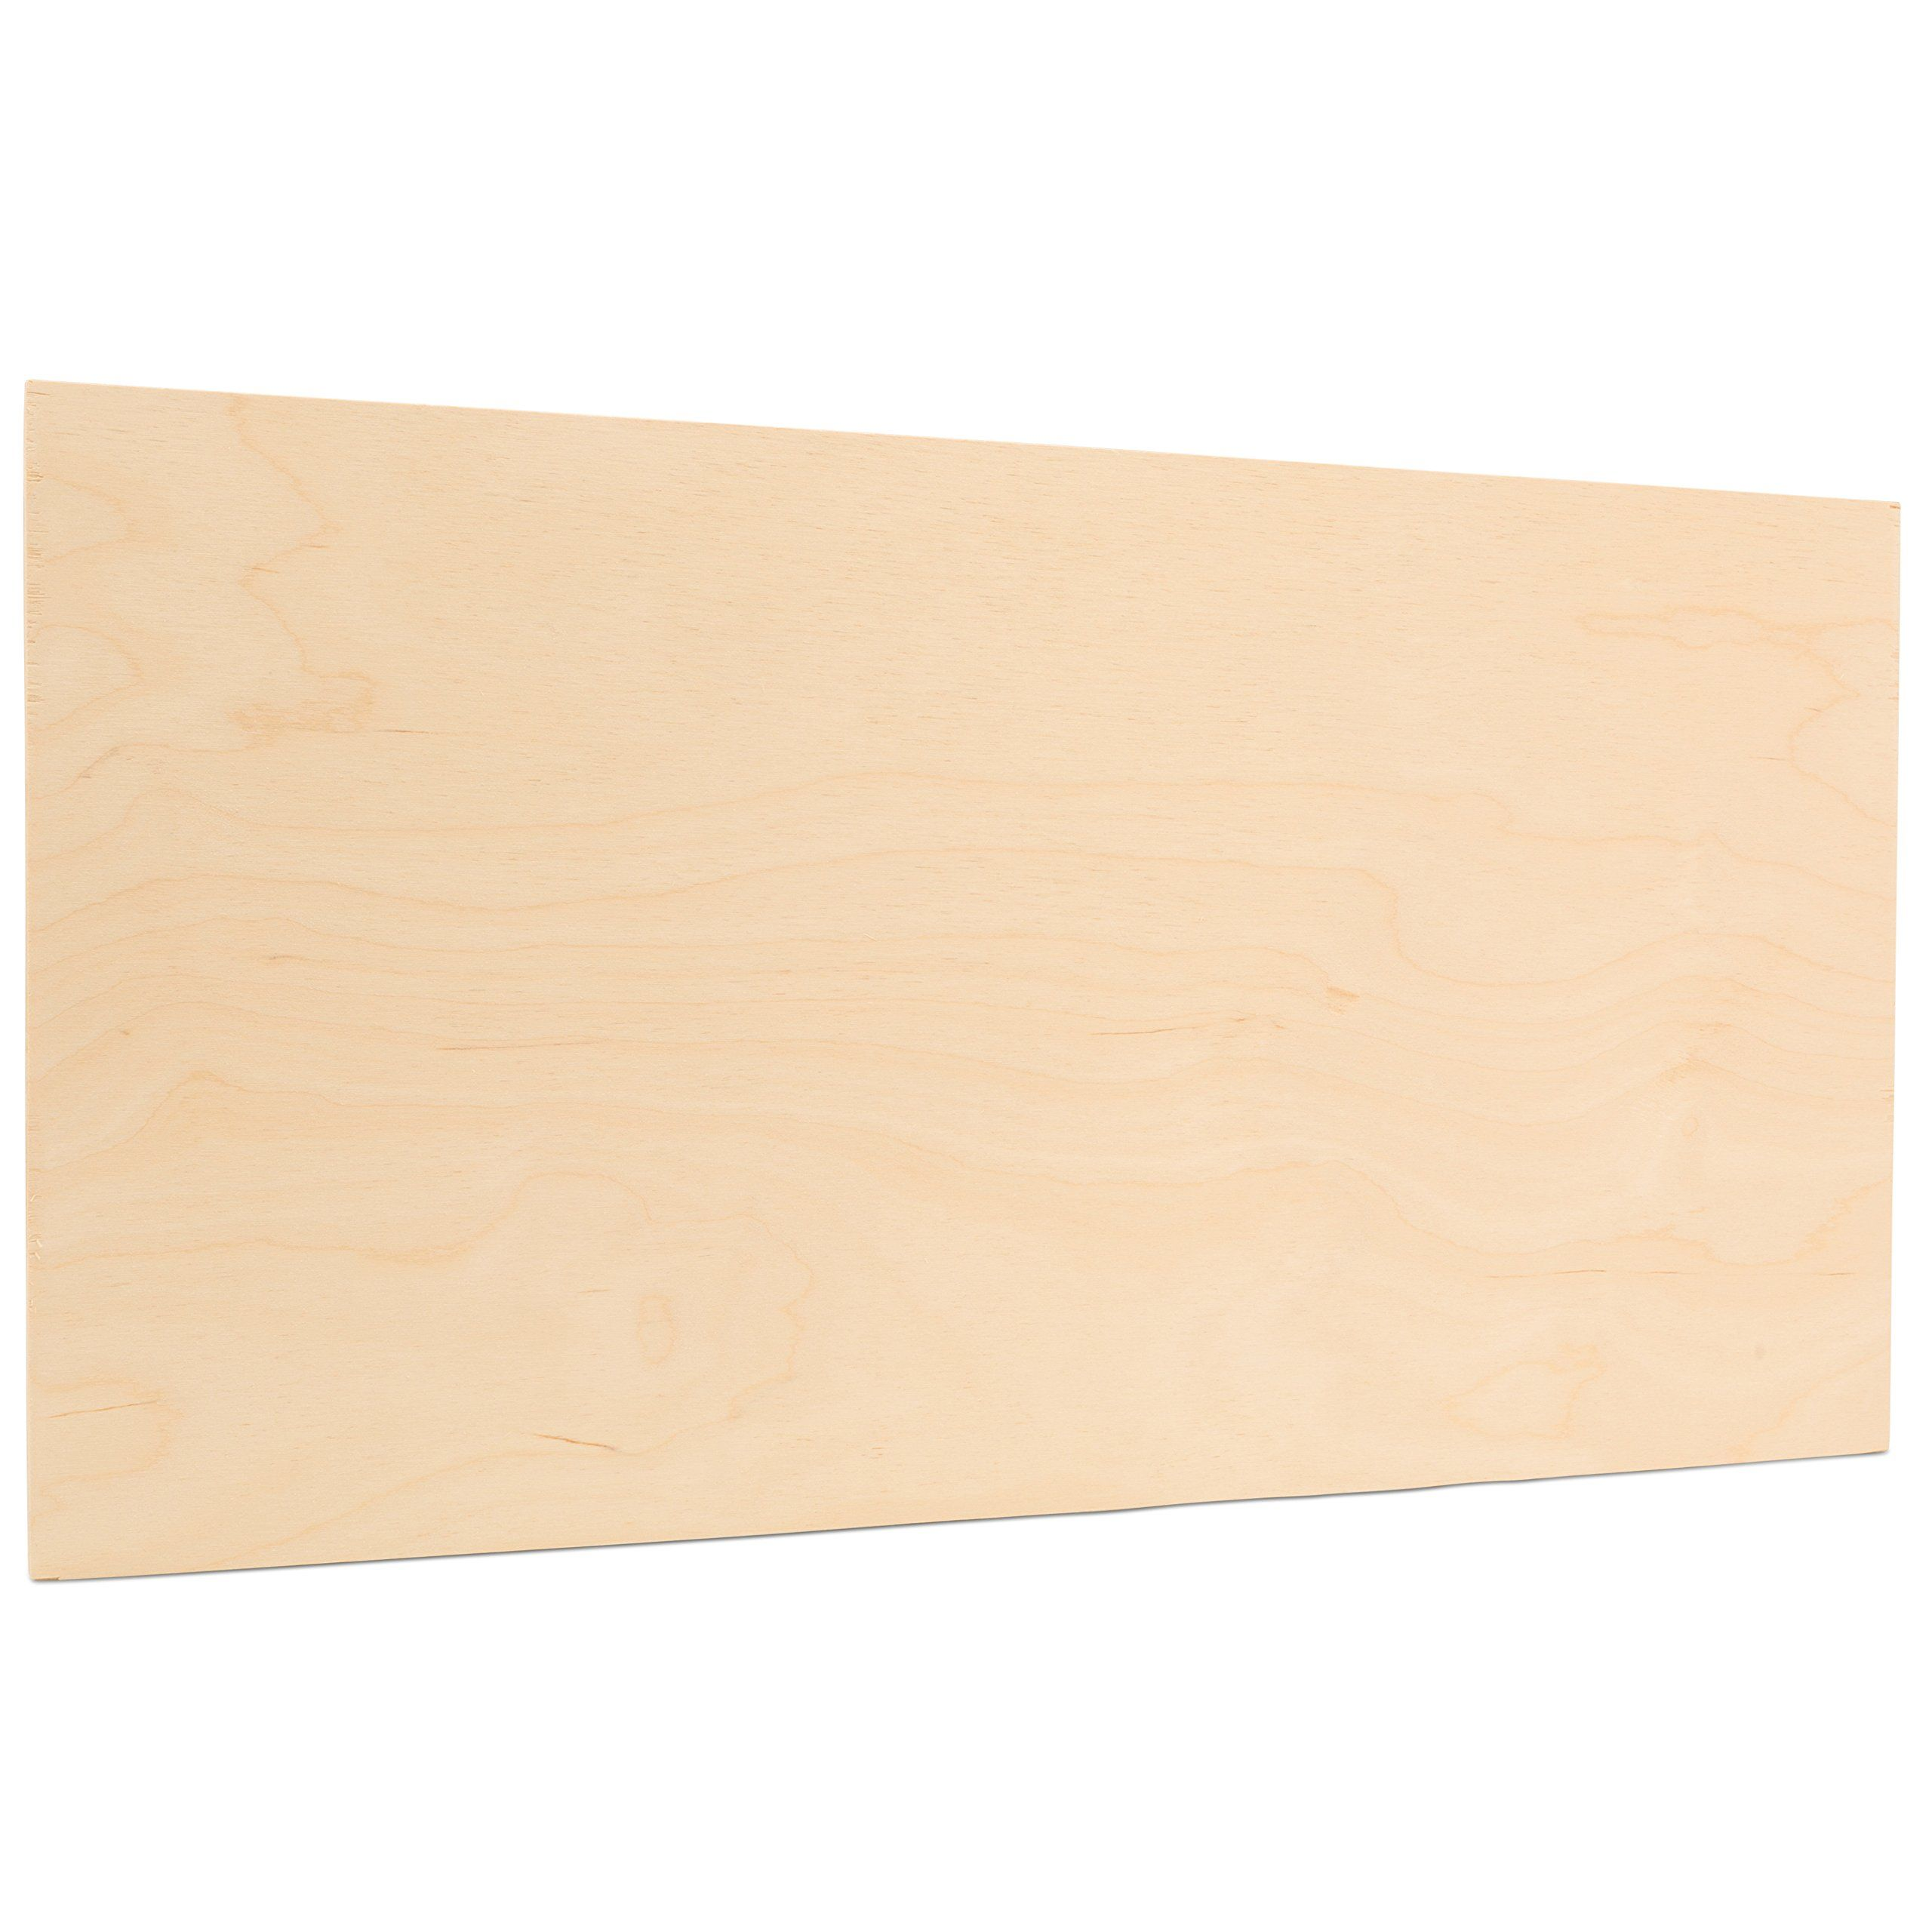 3 Mm 1 8 X 12 X 24 Premium Baltic Birch Plywood A B Bb Grade 20 Flat Sheets By Woodpeckers Visit Baltic Birch Plywood Birch Plywood Woodburning Projects